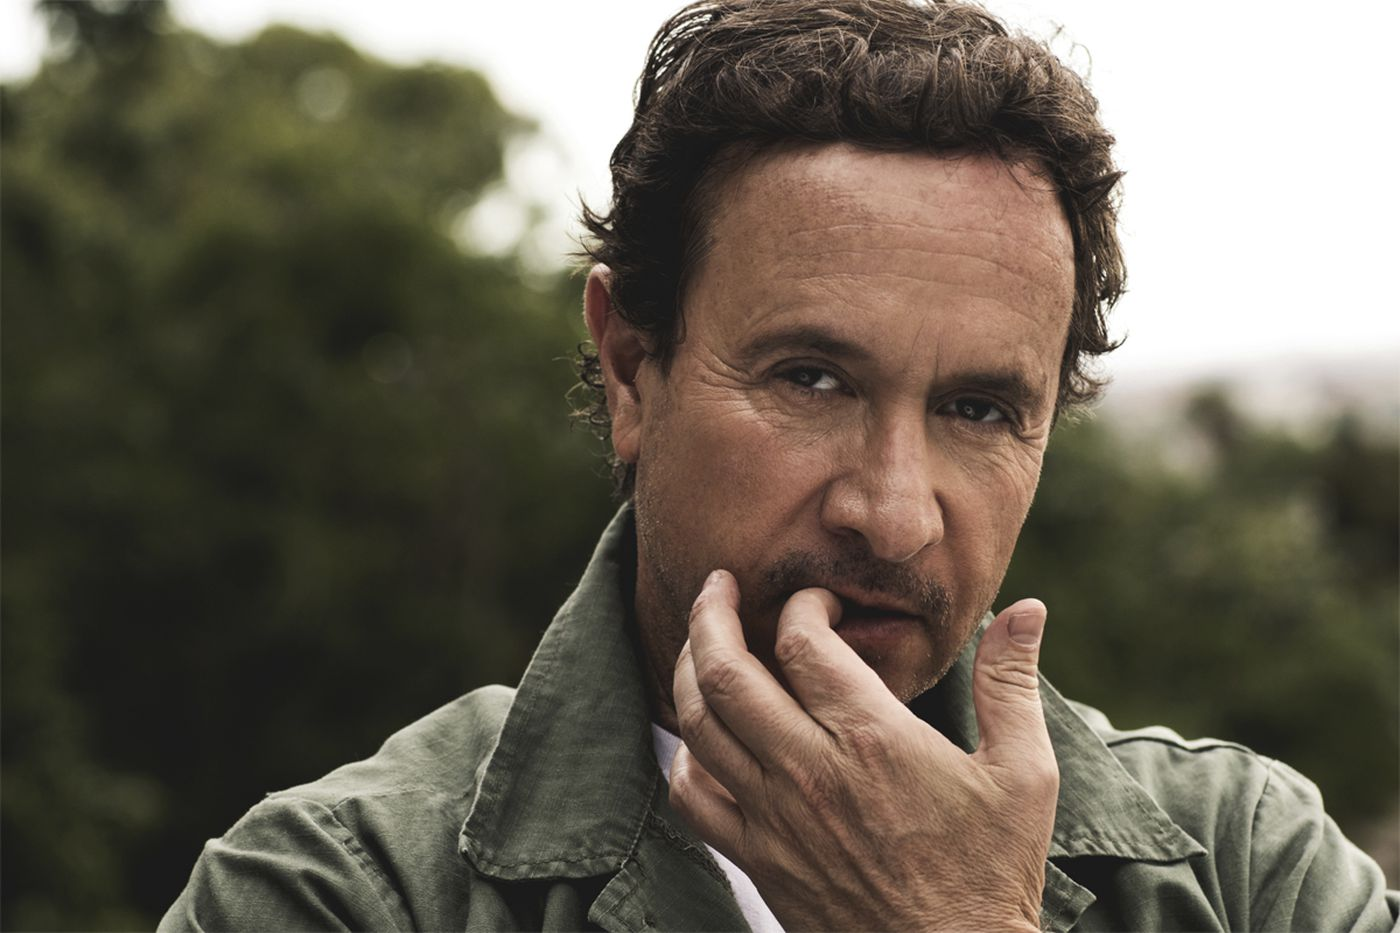 'Everyone knows Pauly Shore': The comedian, now 50, heads to Punch Line